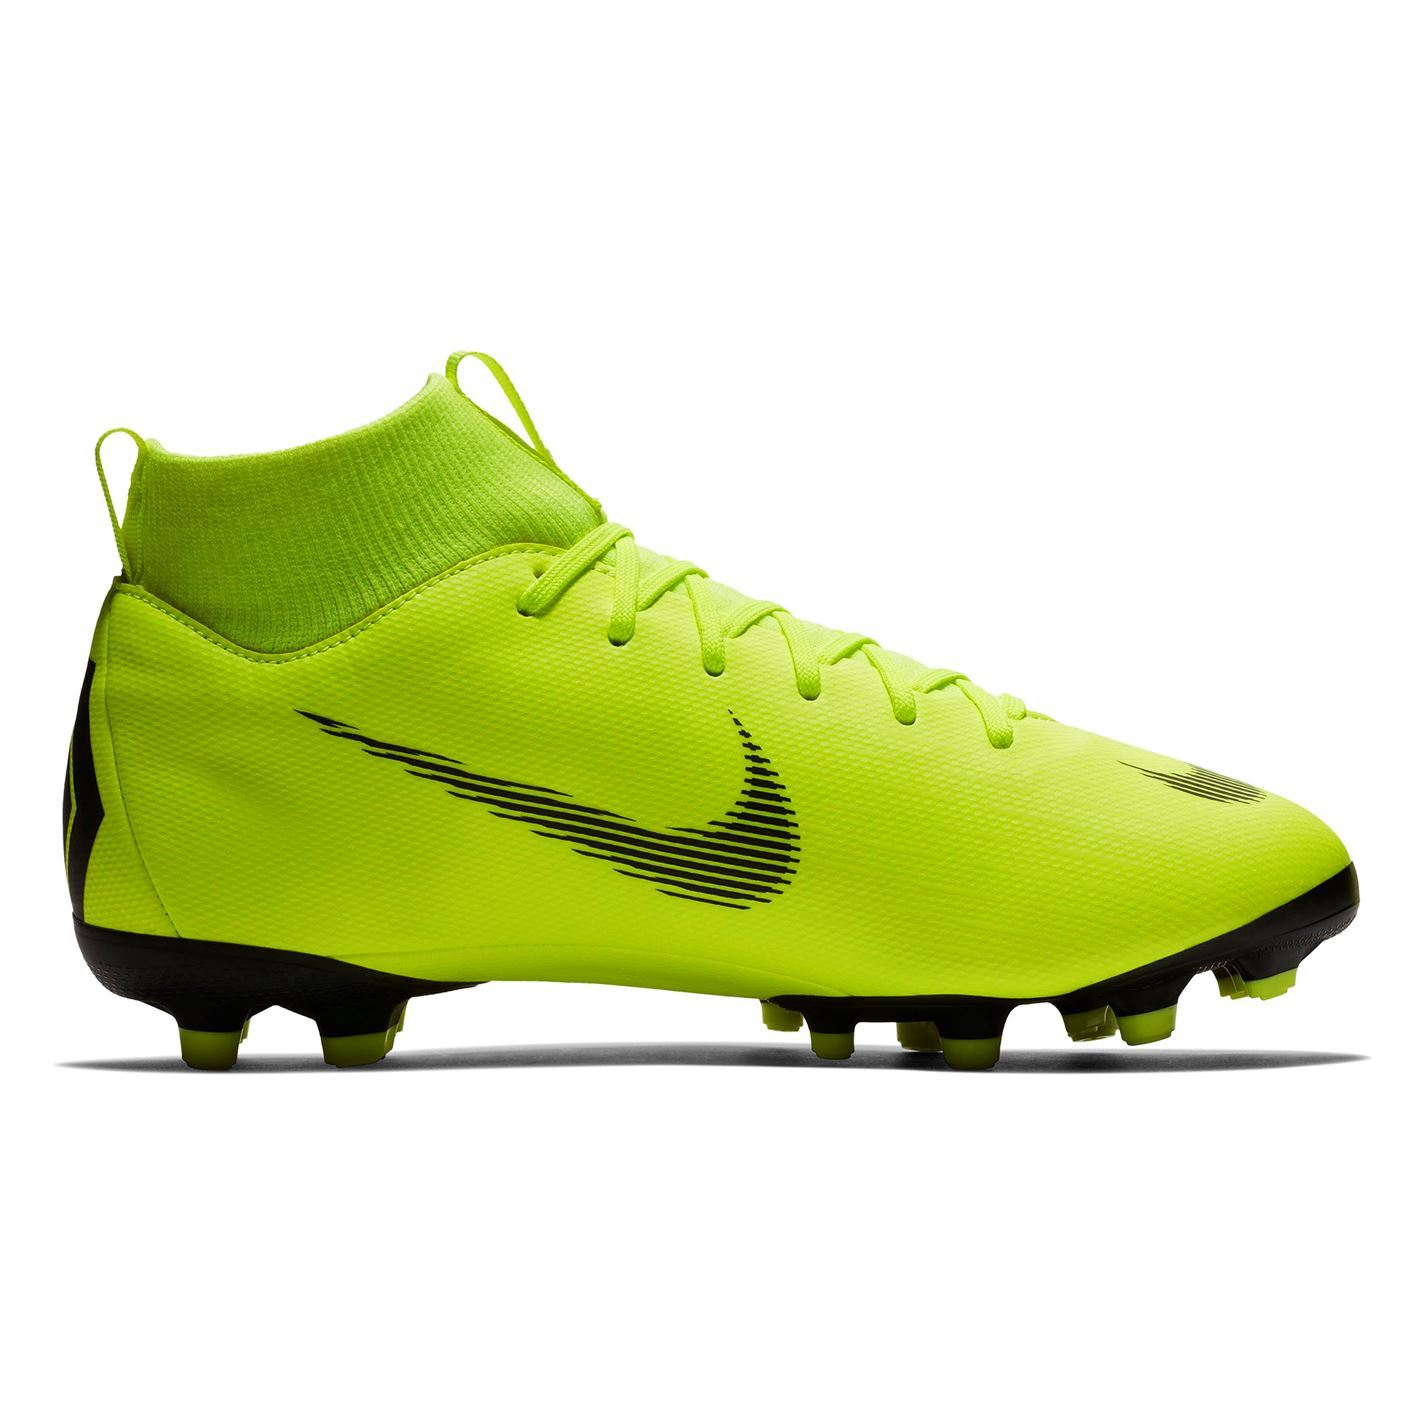 2dd13d7d4e1 Nike Mercurial Superfly Academy Firm Ground Football Boots Juniors ...